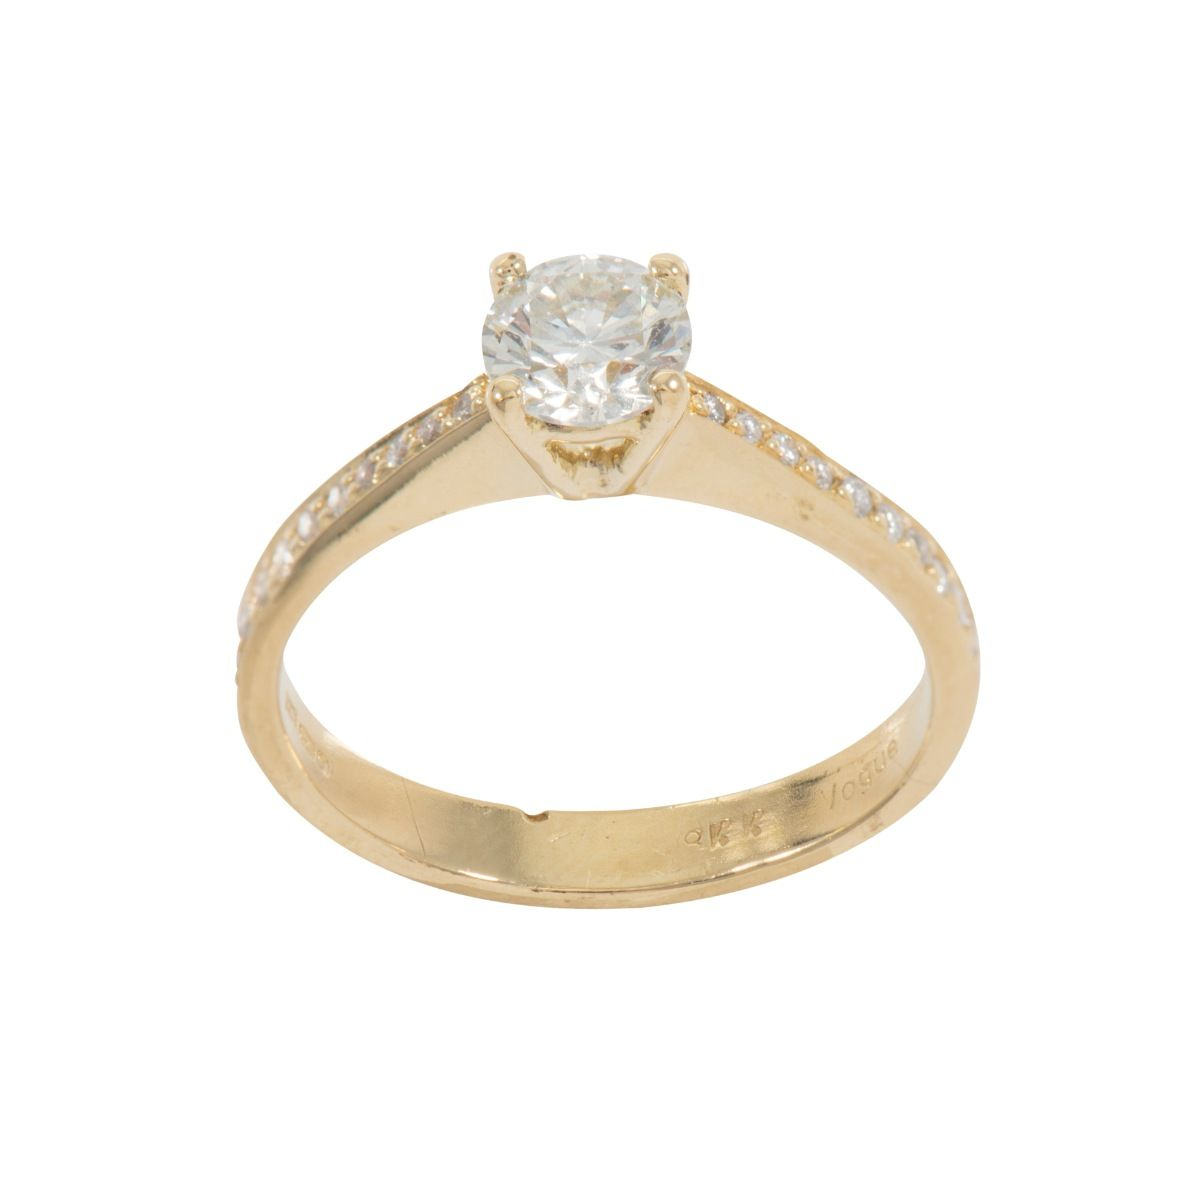 18ct Yellow Gold 0.55ct Round Brilliant Cut Diamond Solitaire Ring with Accent Stones Ladies Size M